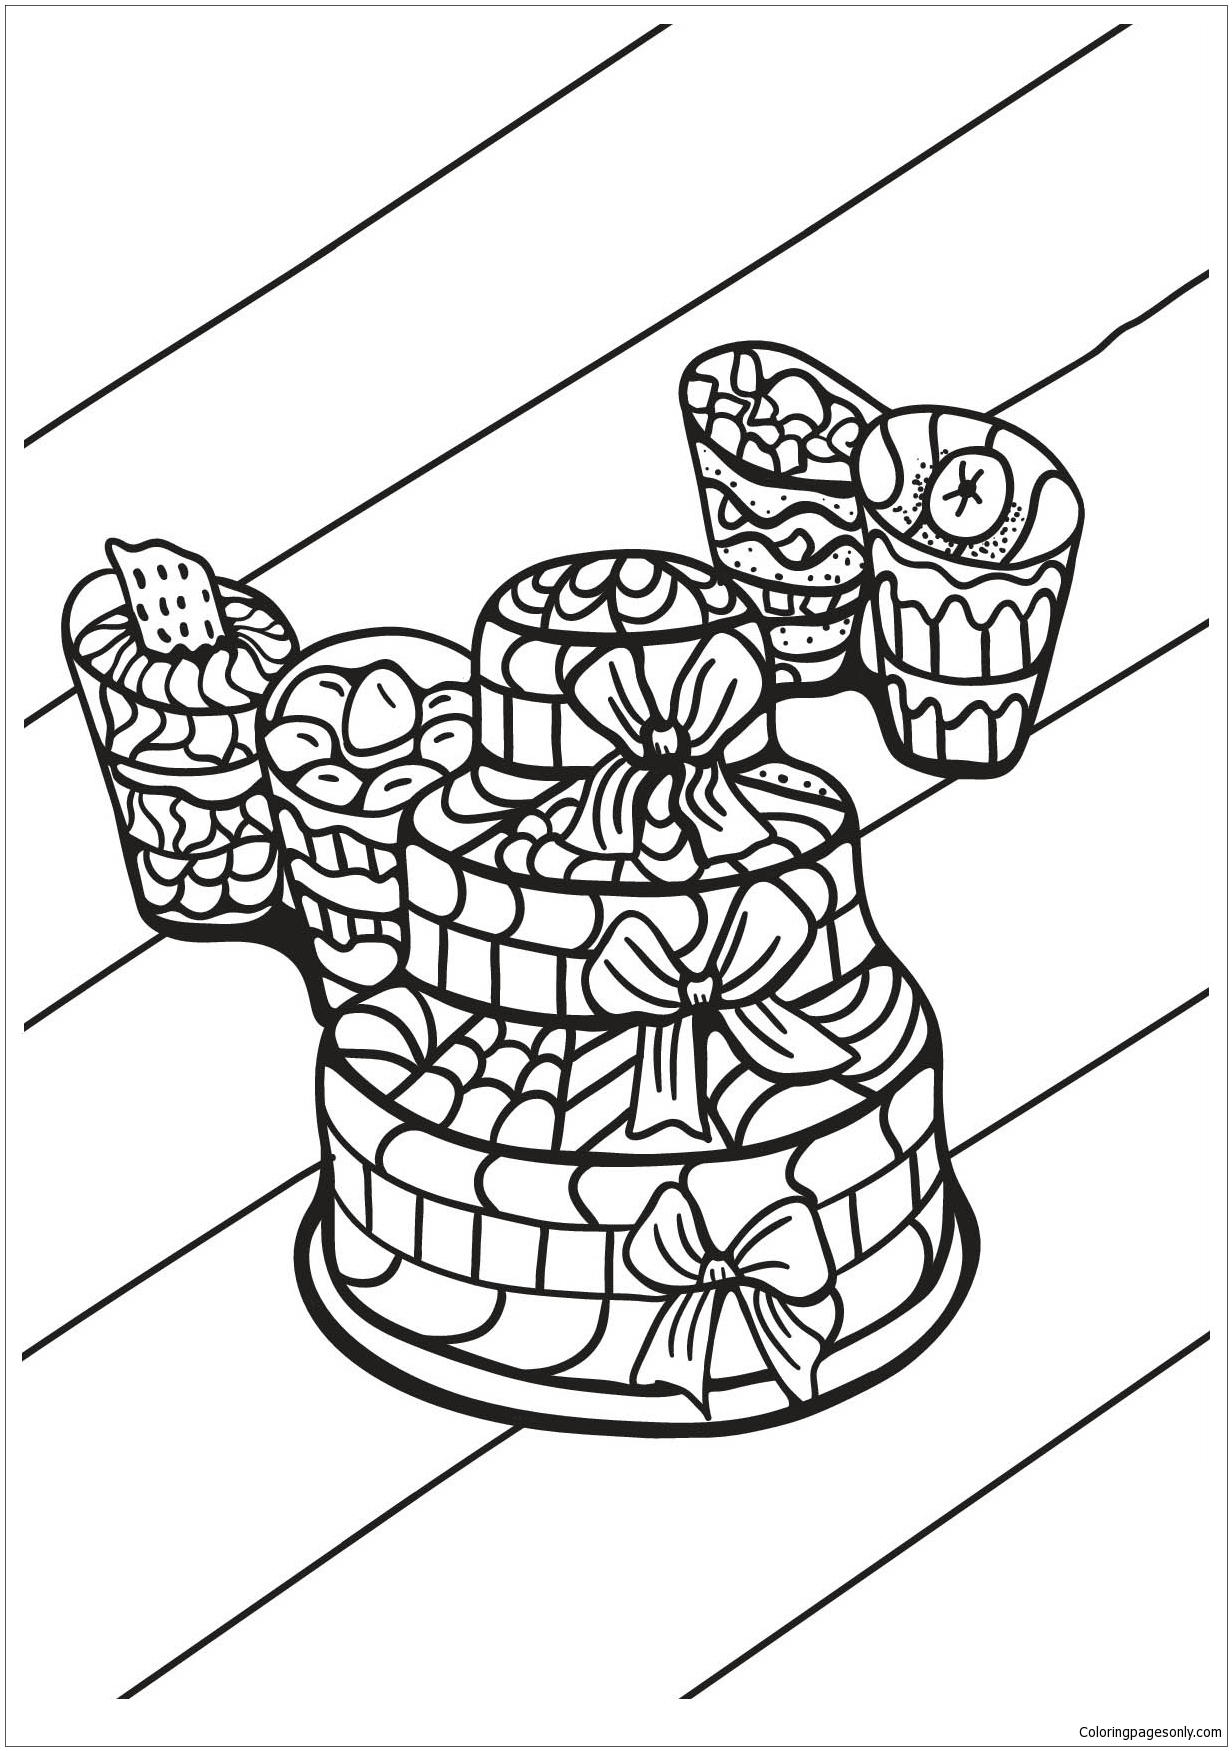 Cake And Cupcakes Coloring Page Free Coloring Pages Online